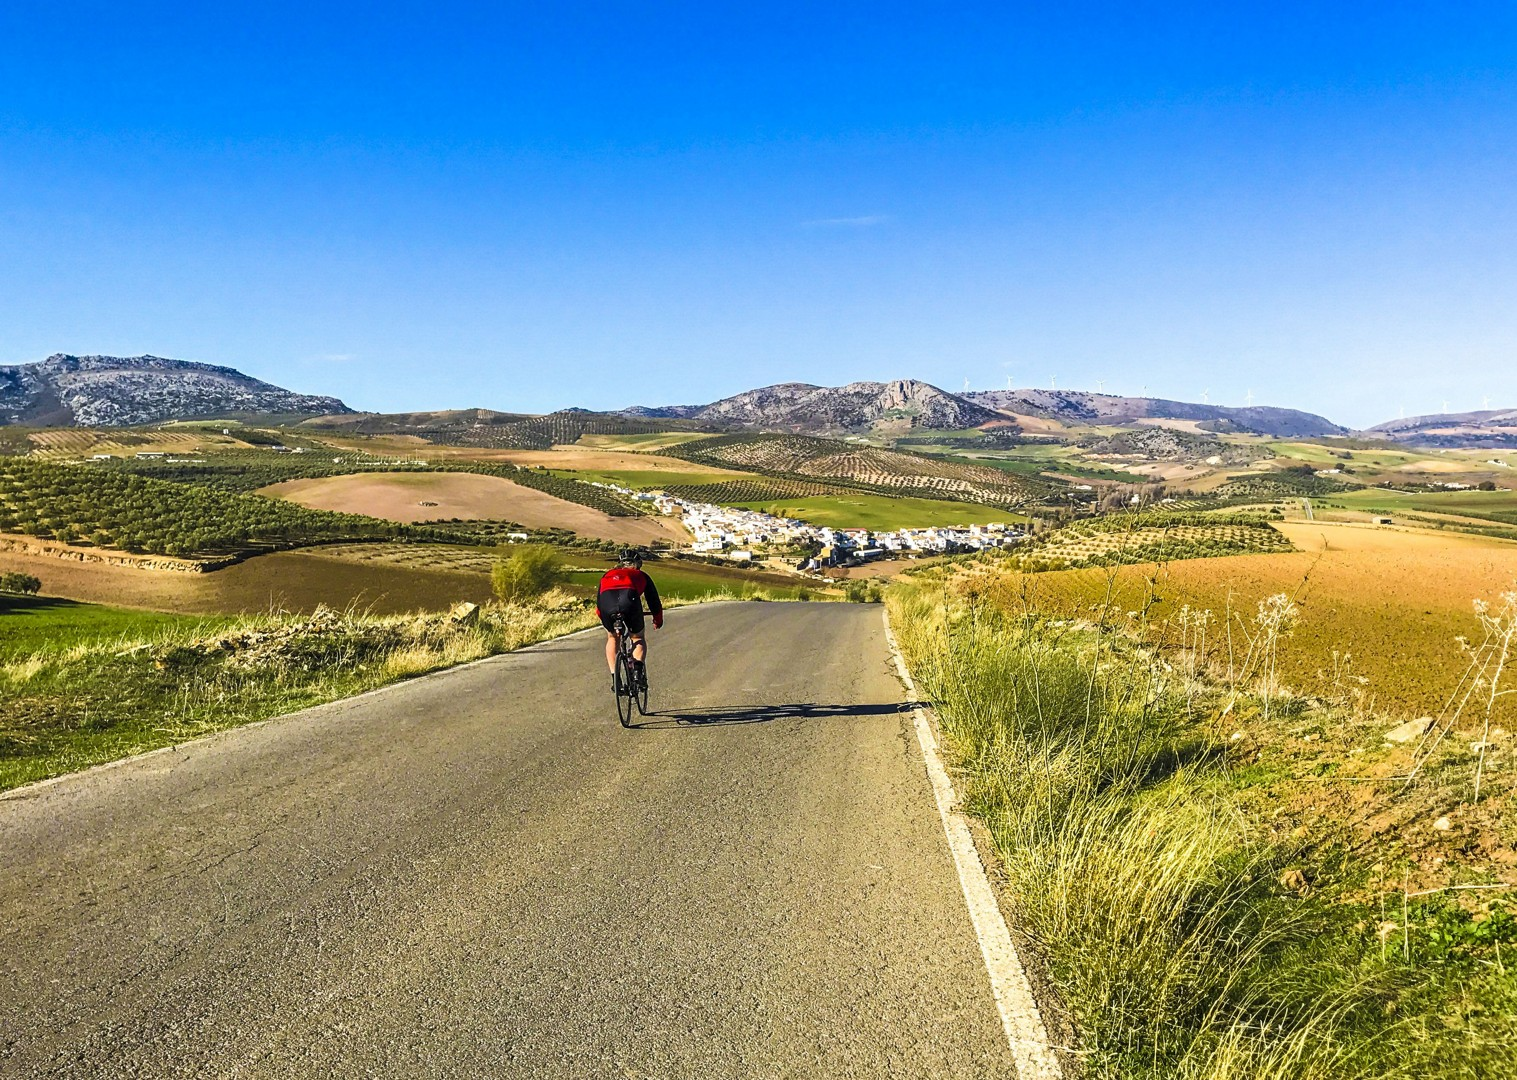 smooth-roads-cycling-vacation-southern-spain.jpg - Southern Spain - Andalucia - Los Pueblos Blancos - Guided Road Cycling Holiday - Road Cycling